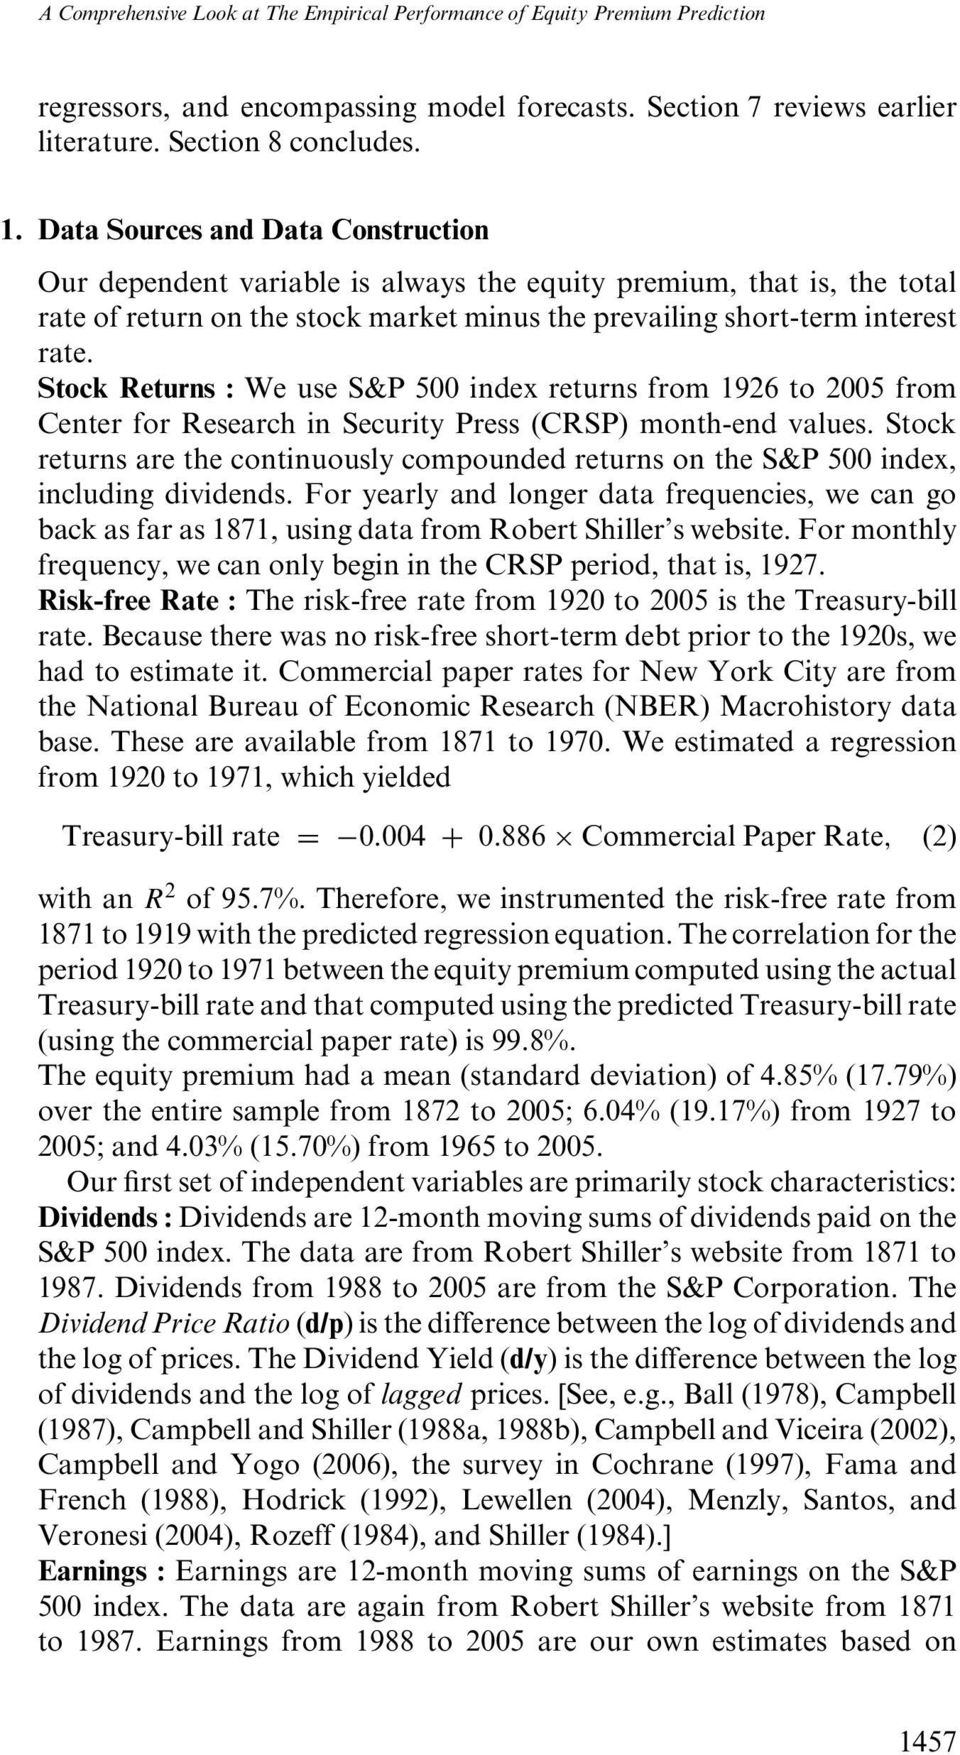 Stock Returns : We use S&P 500 index returns from 1926 to 2005 from Center for Research in Security Press (CRSP) month-end values.